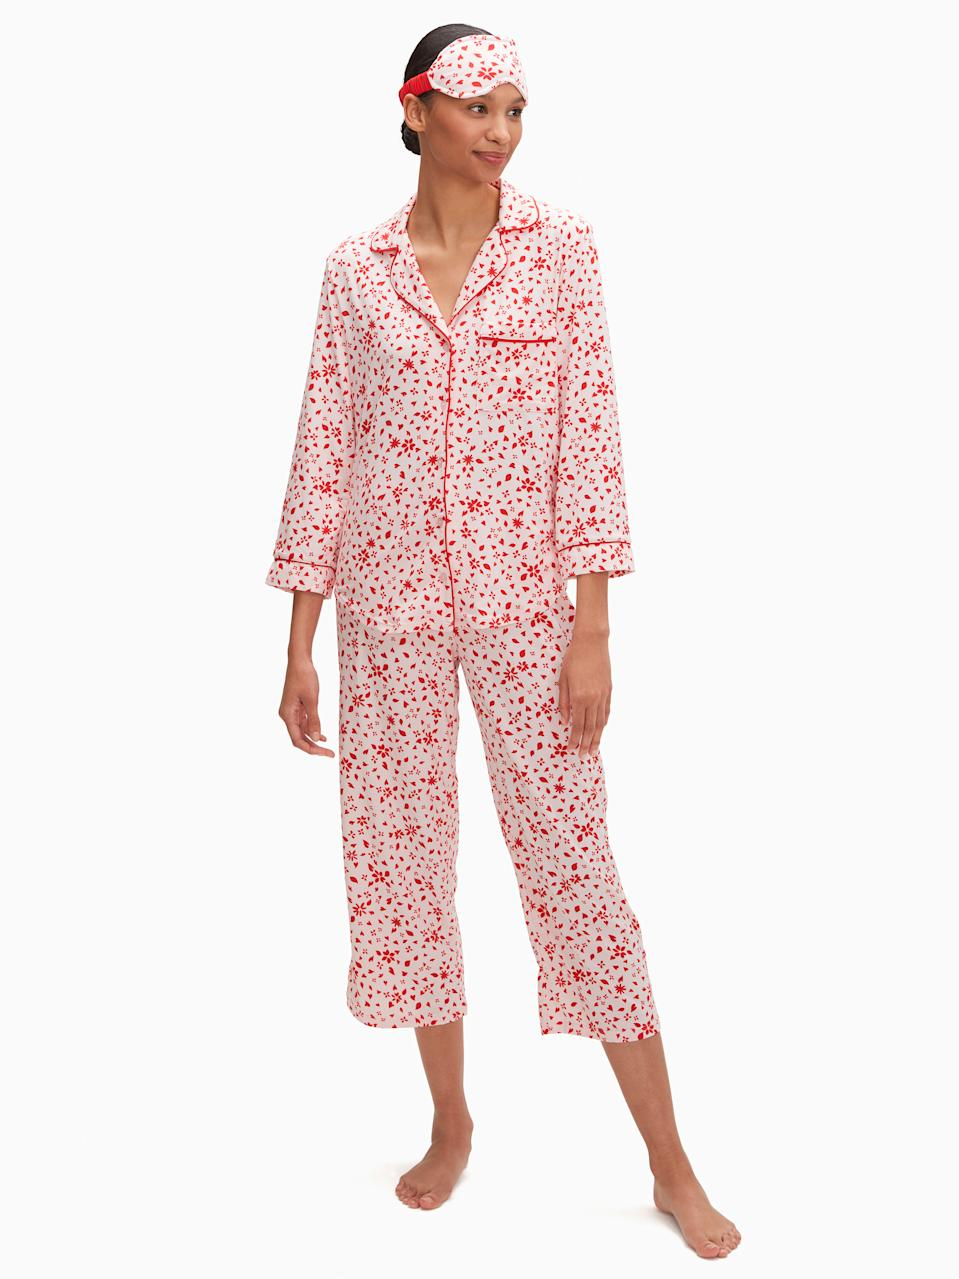 3/4 Sleeve Cropped PJs - $59 (originally $99)